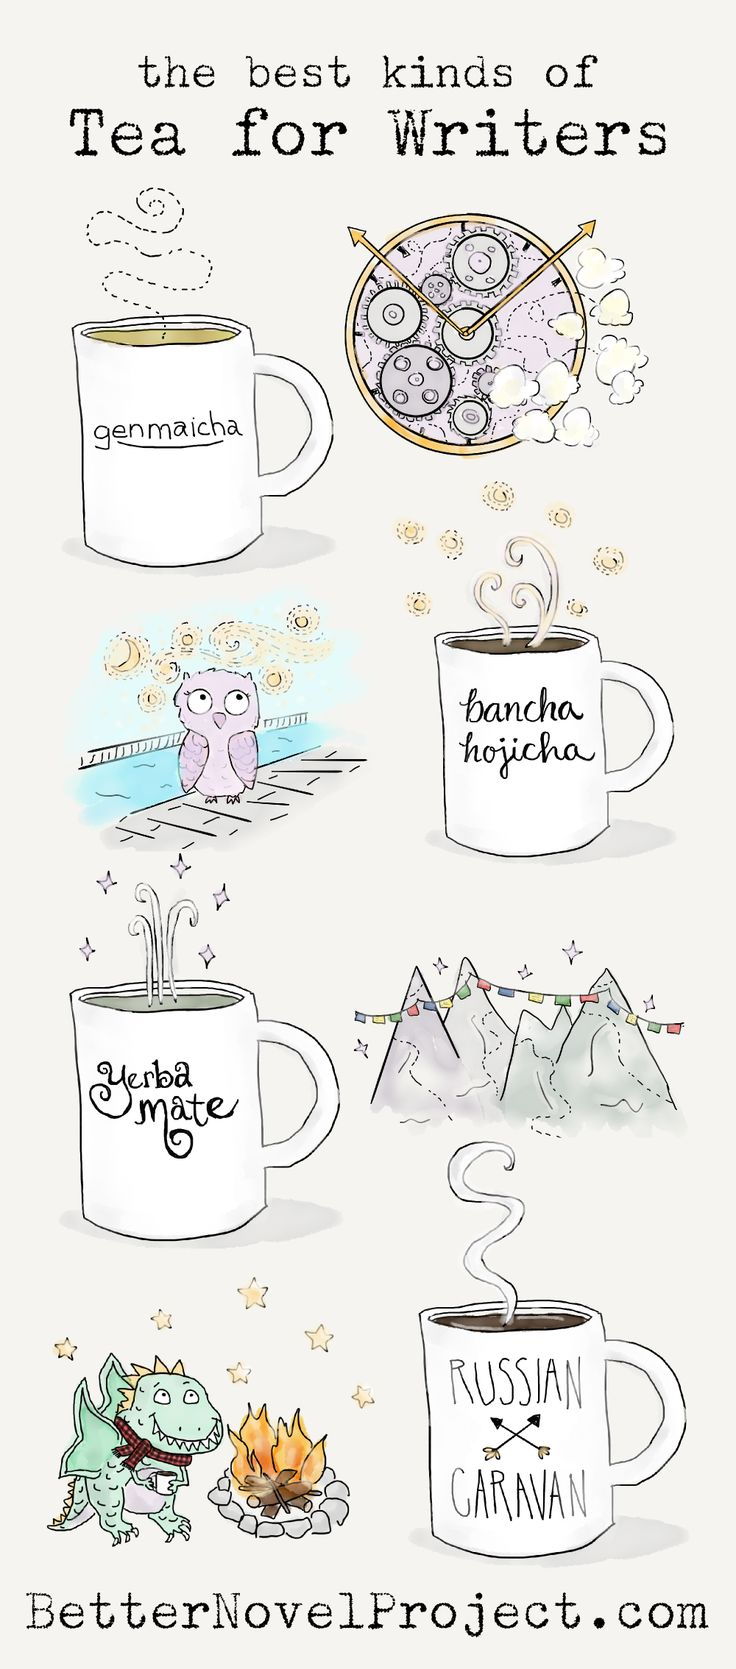 The Best Kinds of Tea for Writers | Better Novel Project